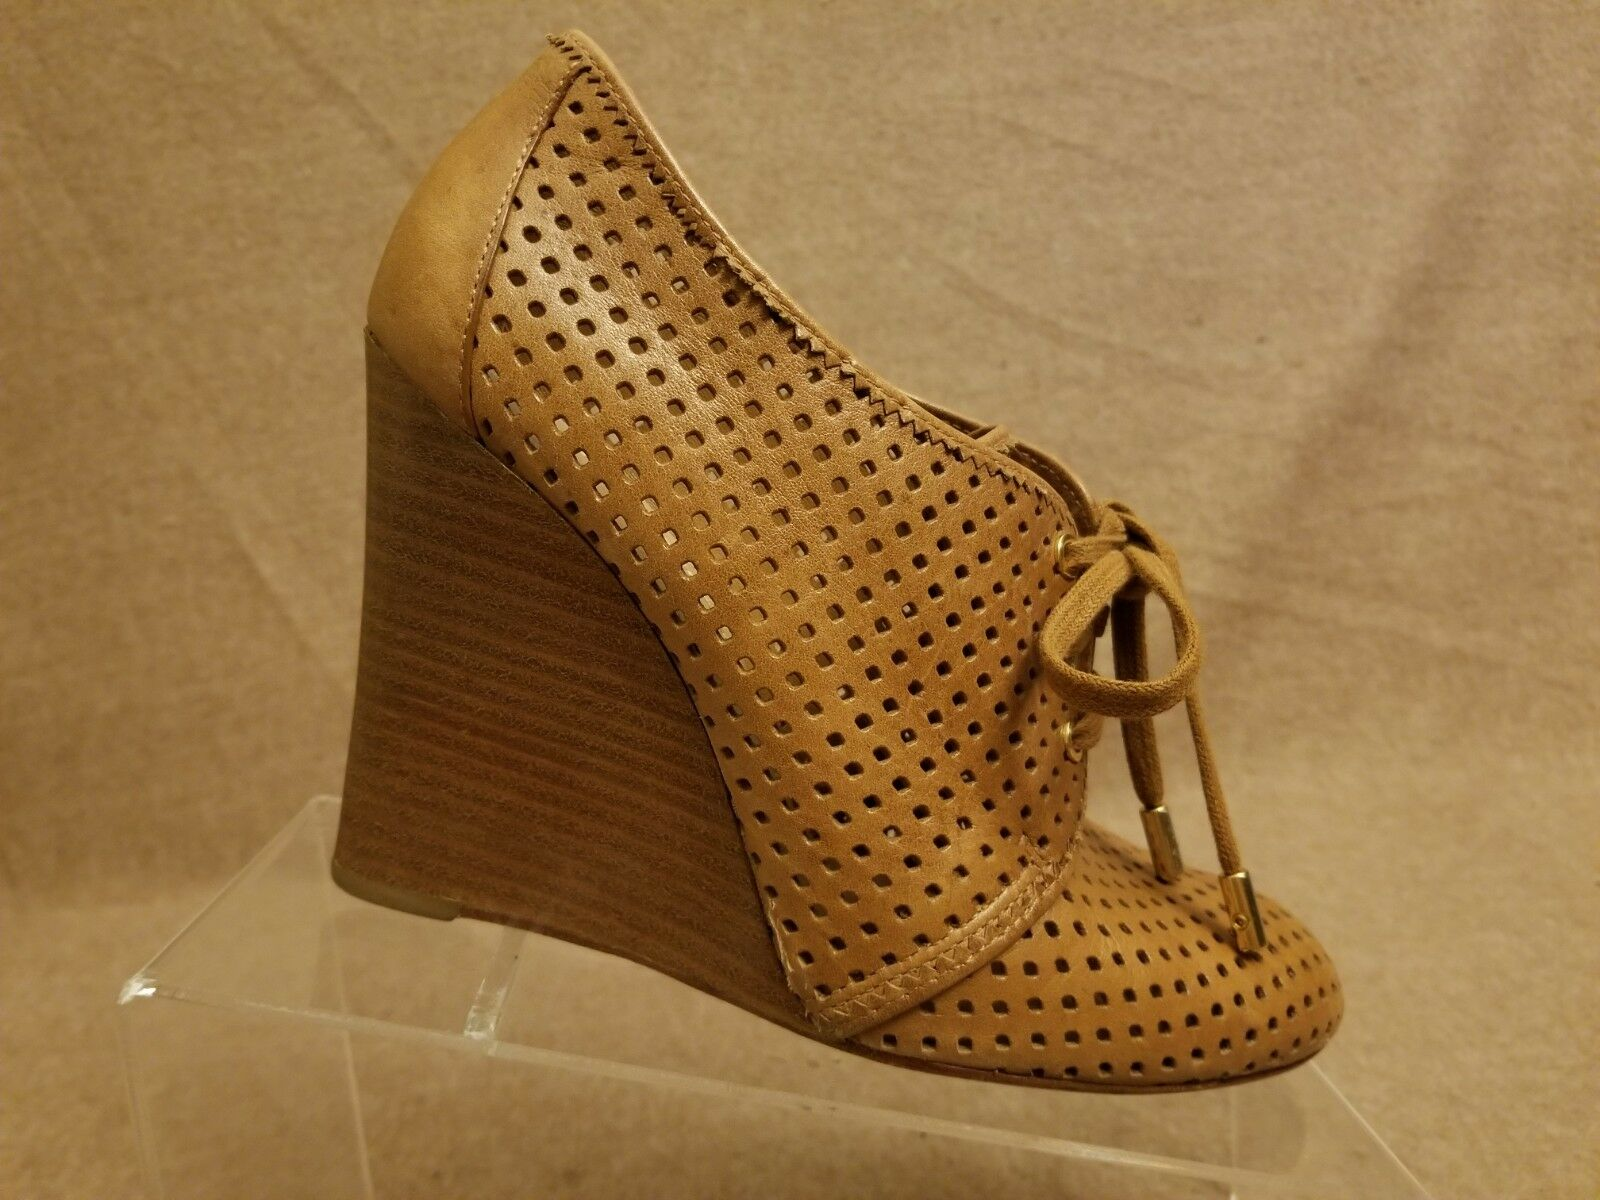 Tory Burch Women Brown Leather Perforated Ankle Wedge Lace Up Booties Size 9 M